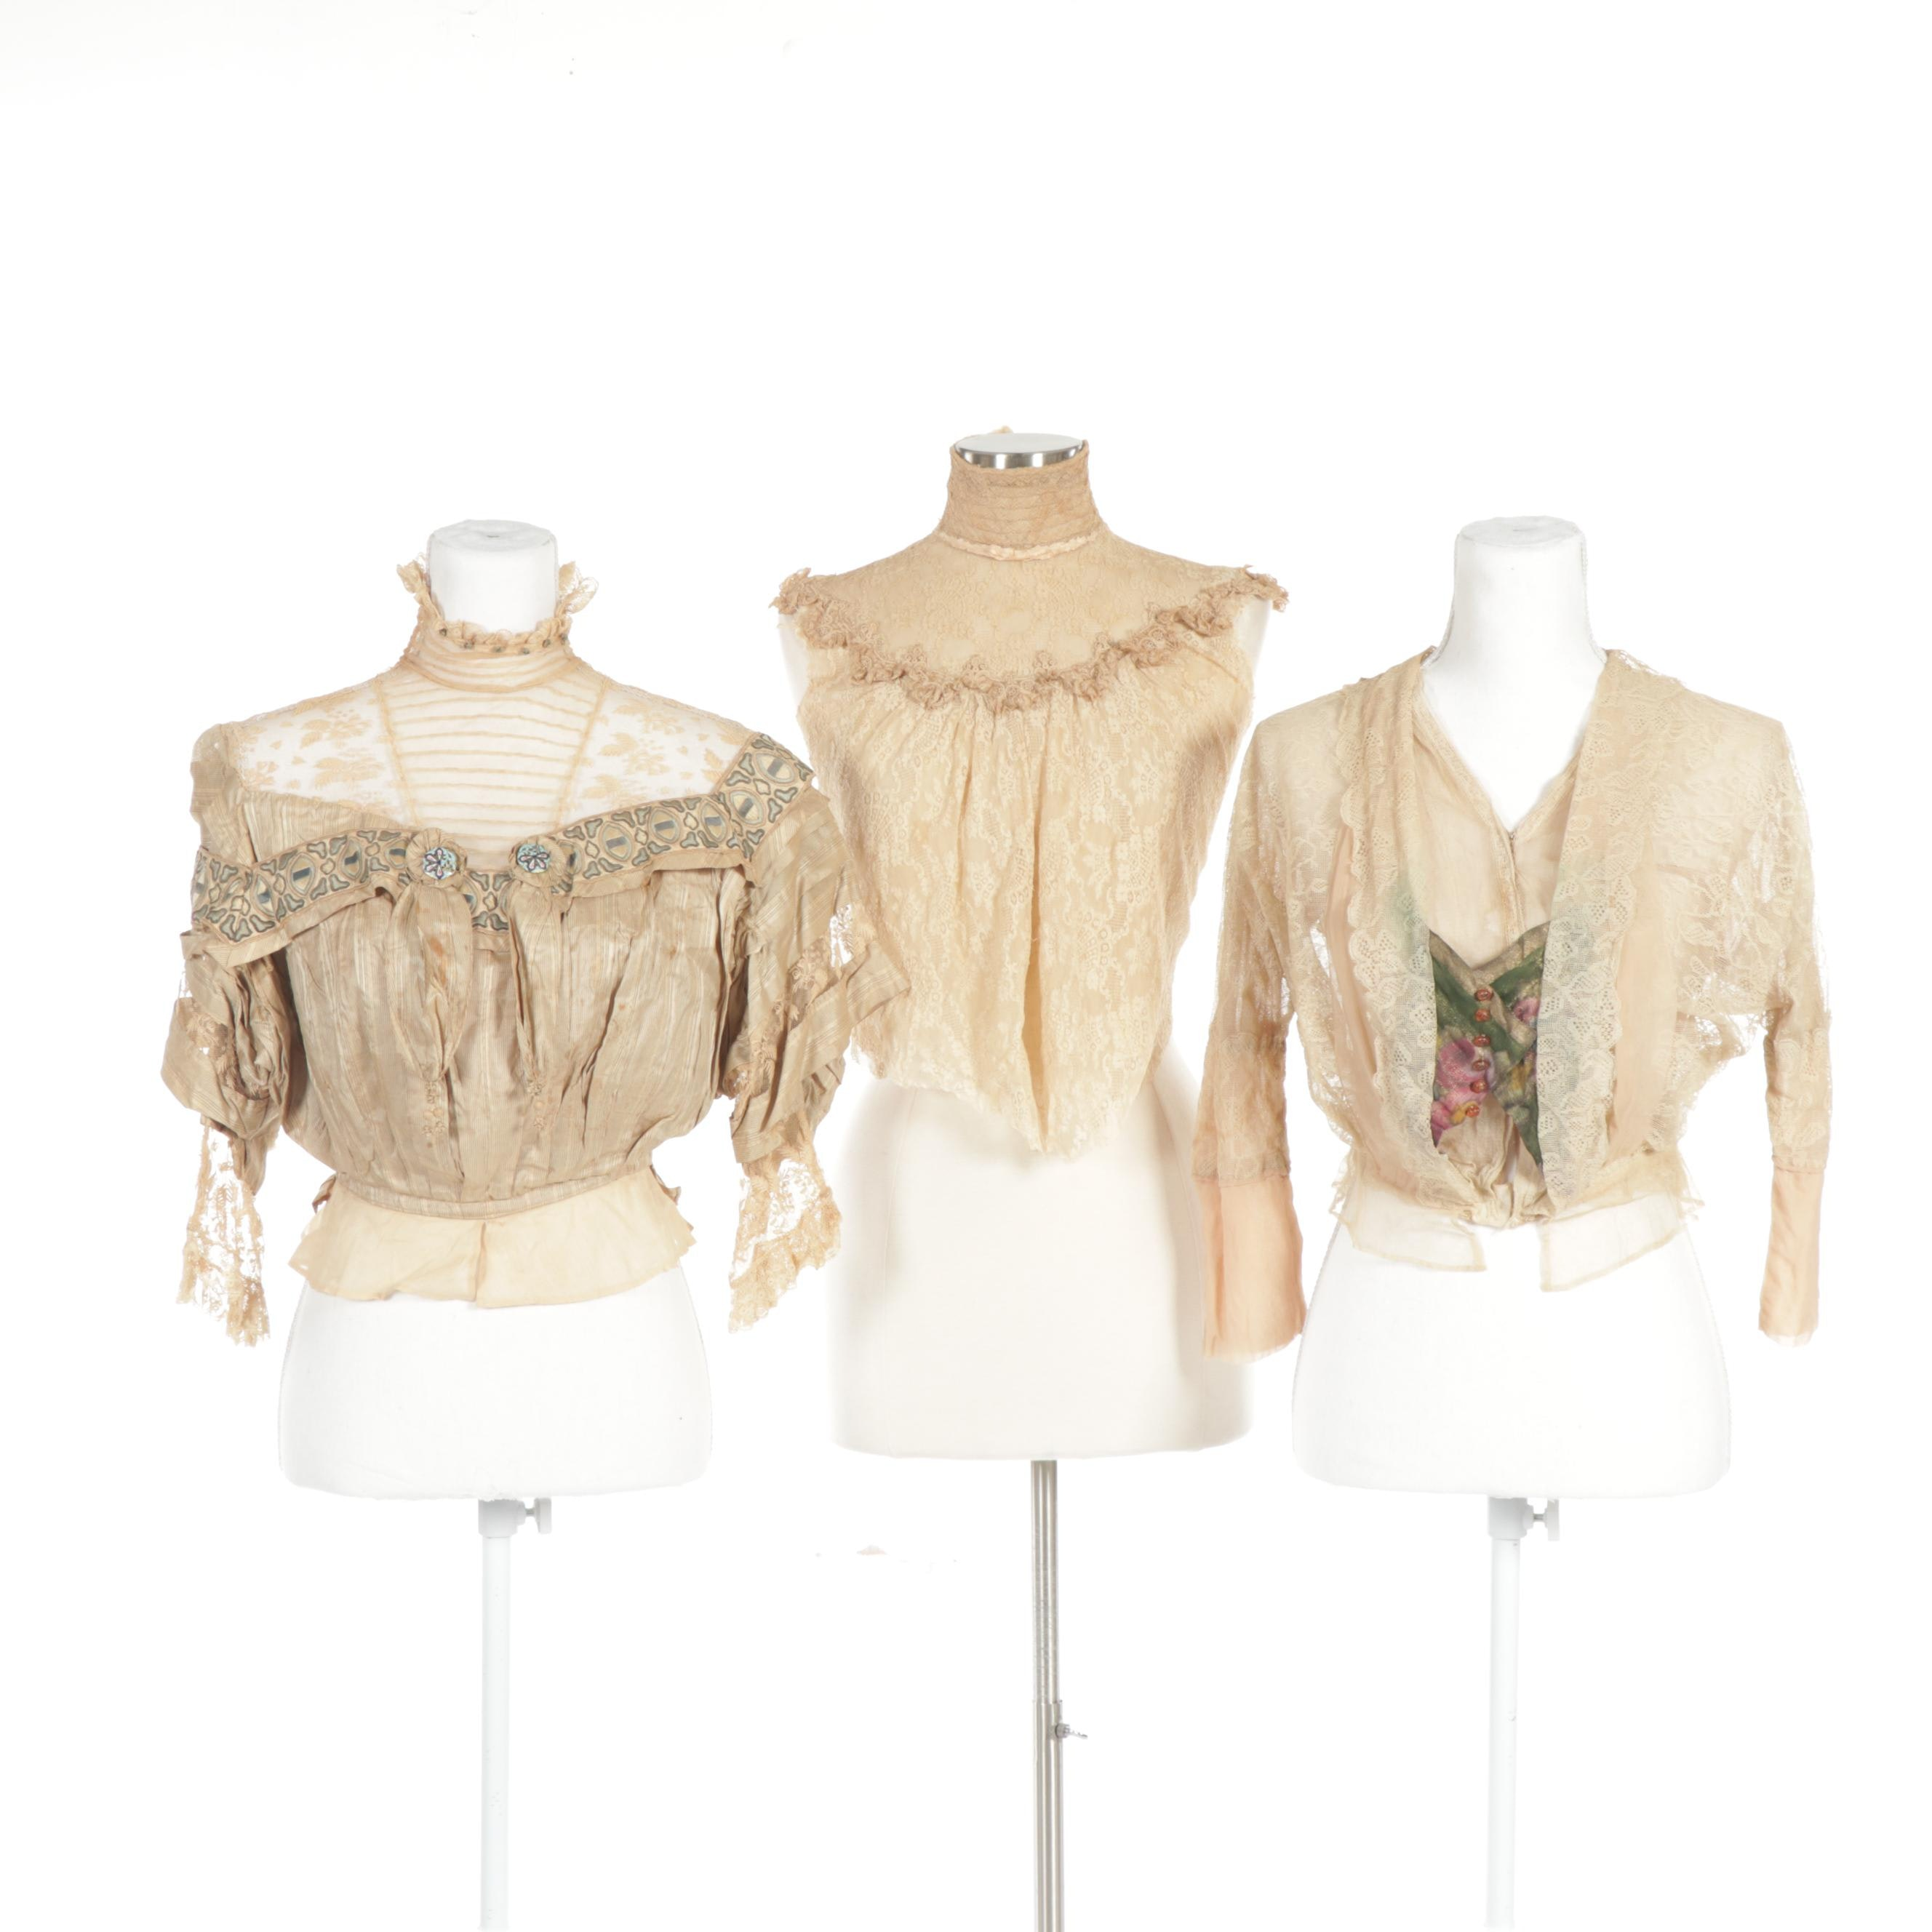 Women's Lace Blouses and Trim, Late Victorian to Edwardian Era